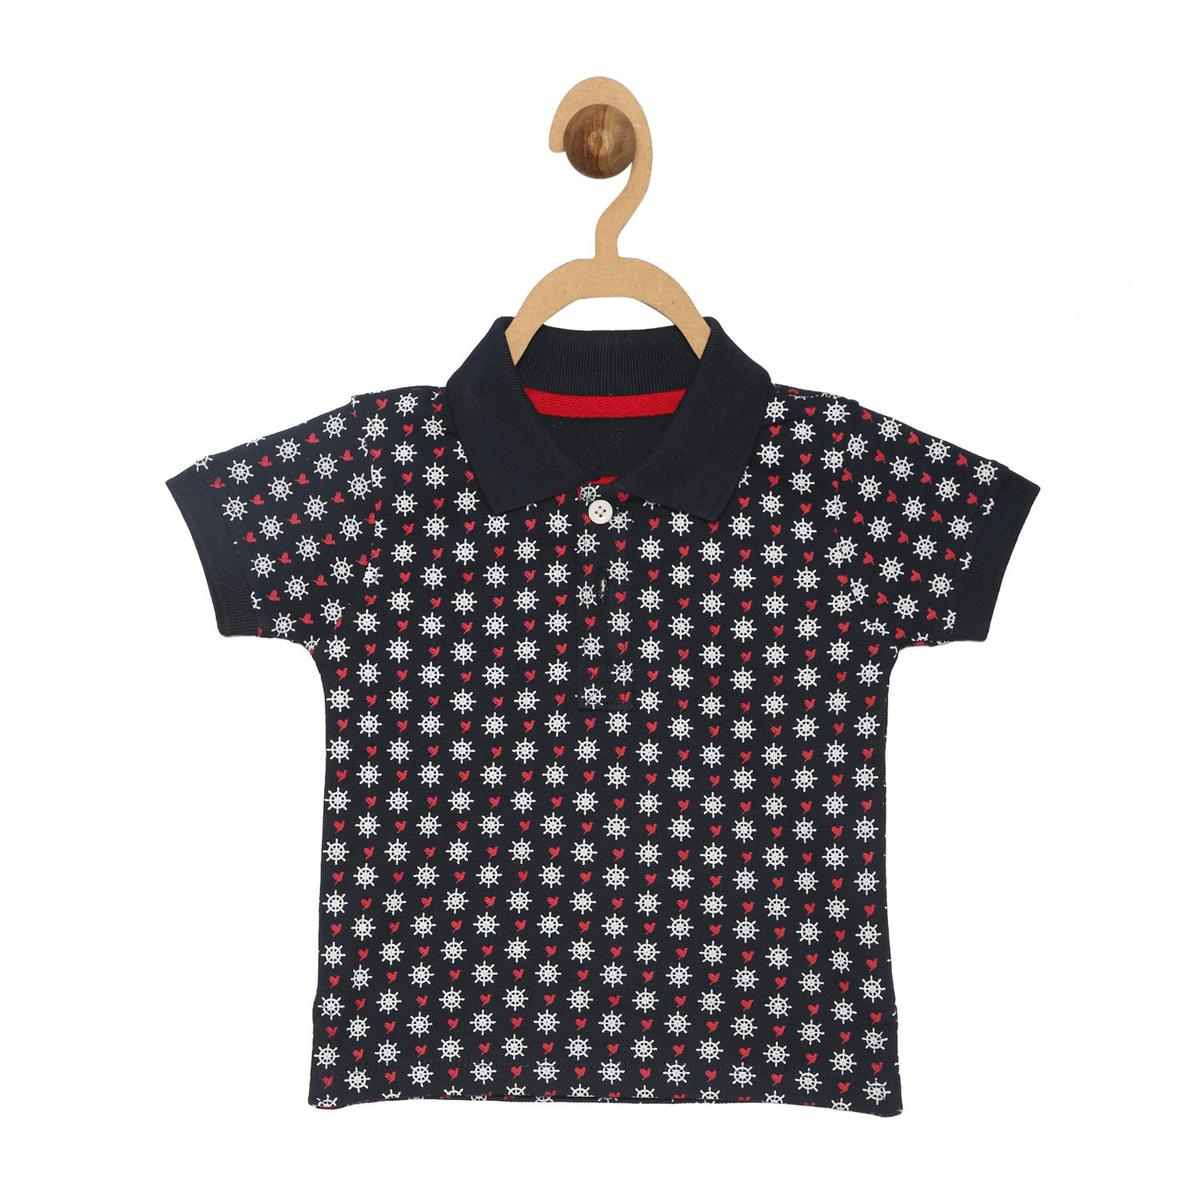 612 League - Navy Colored Collared Aop Printed Cotton Polo T-shirt For Baby Boys